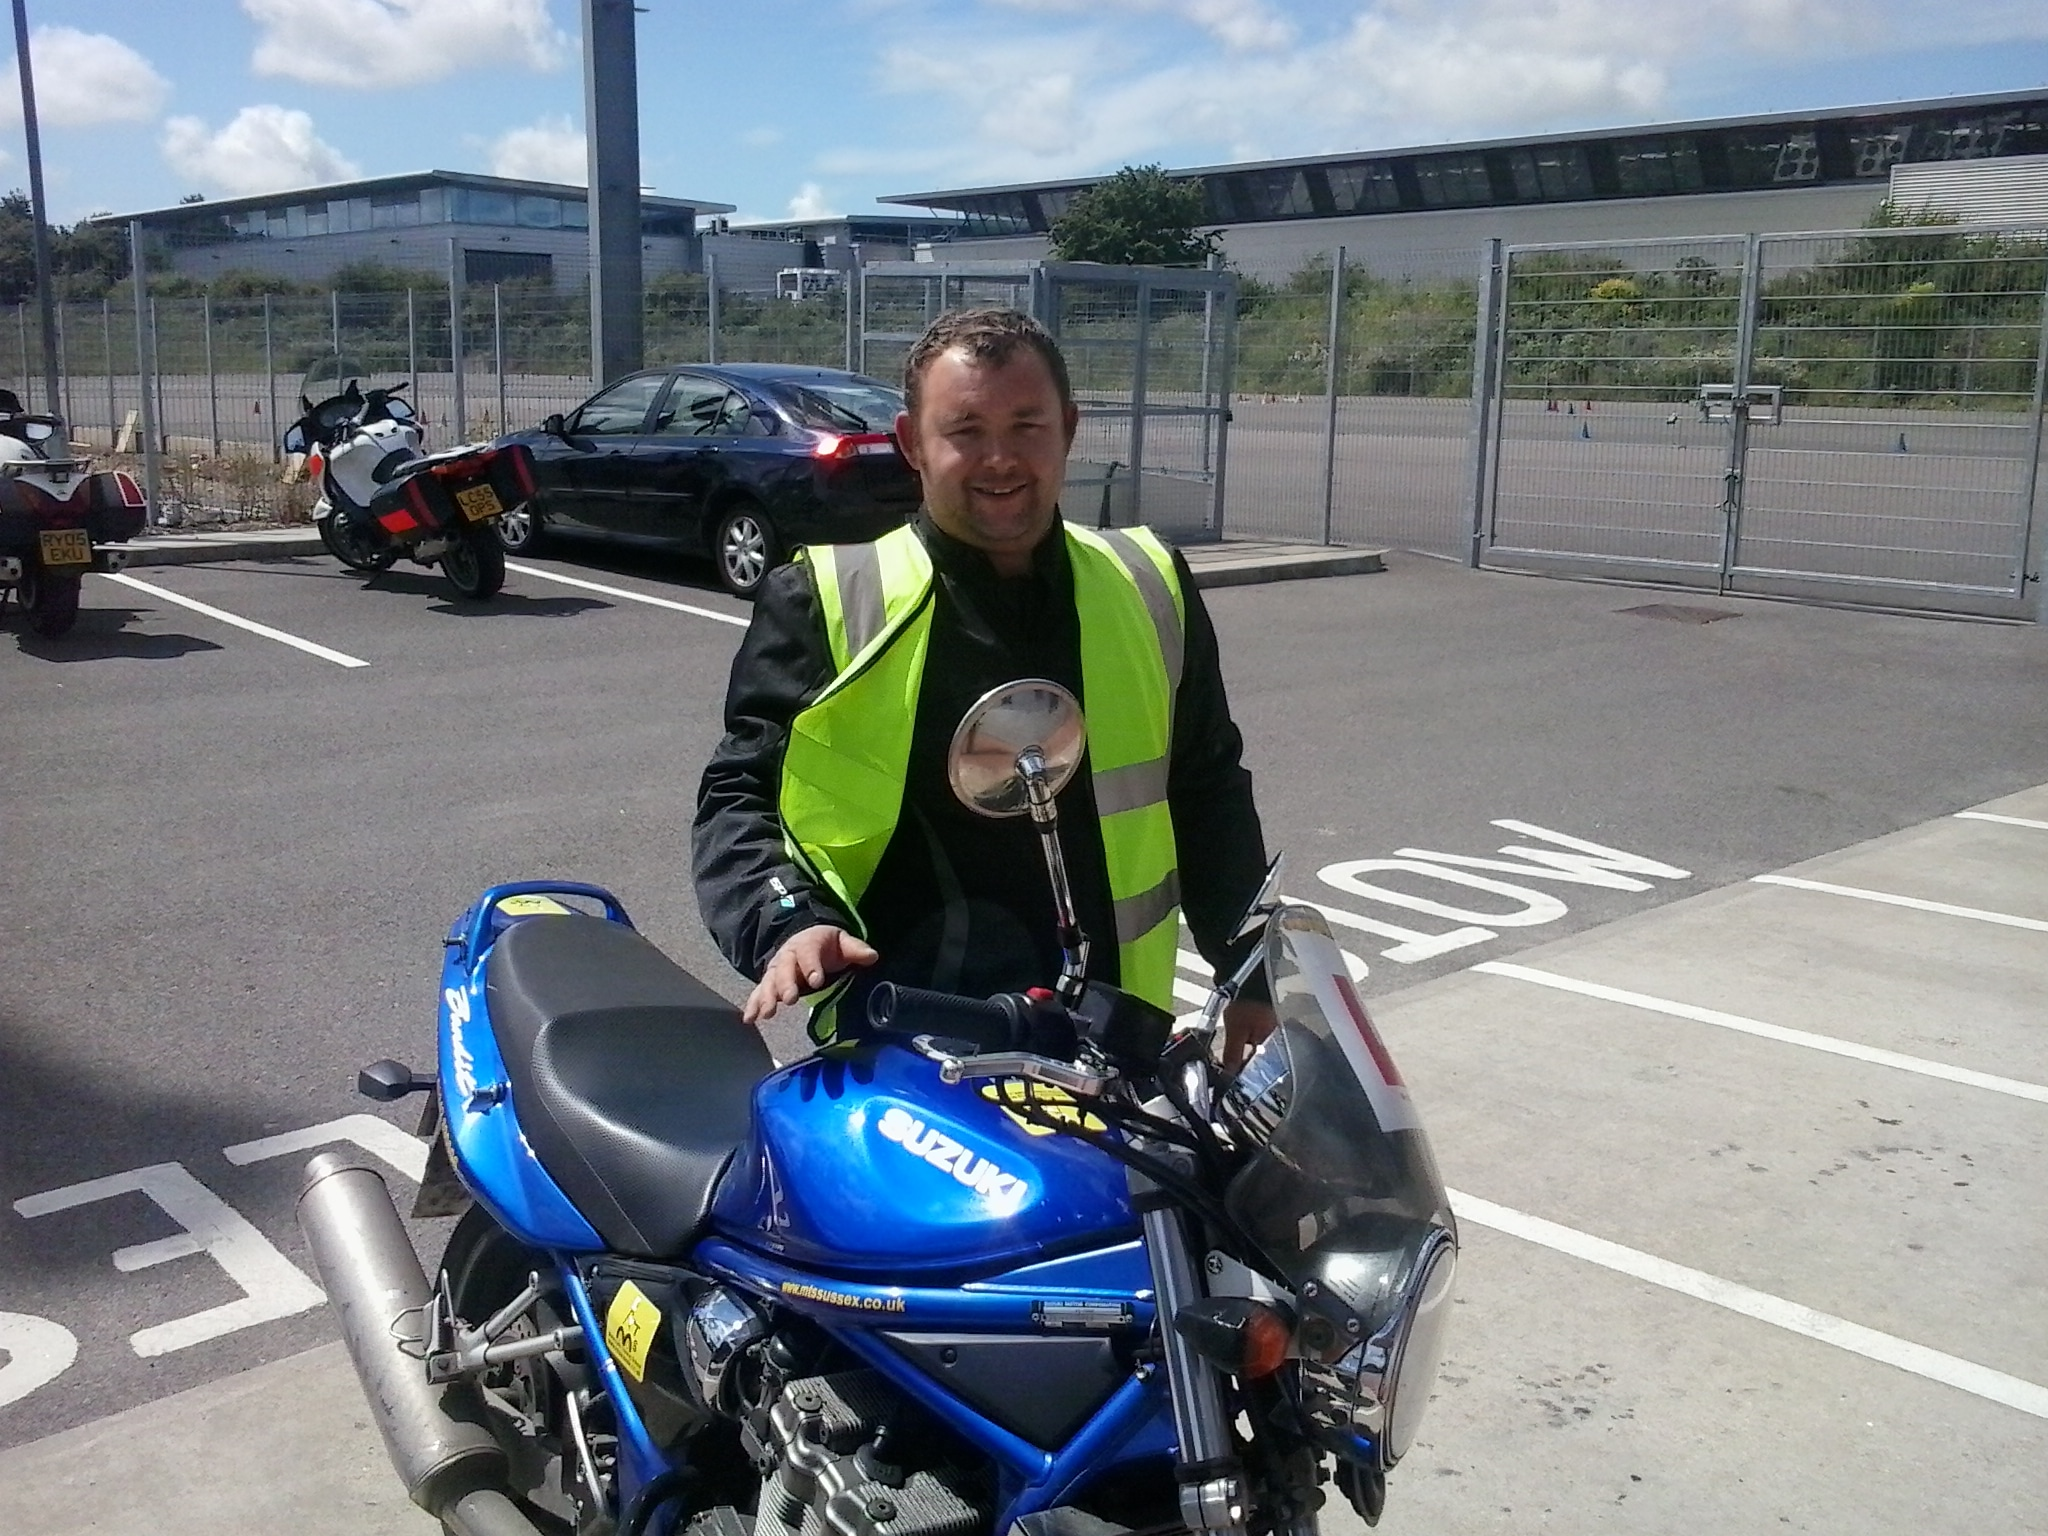 DAS pass for Gary from East Grinstead